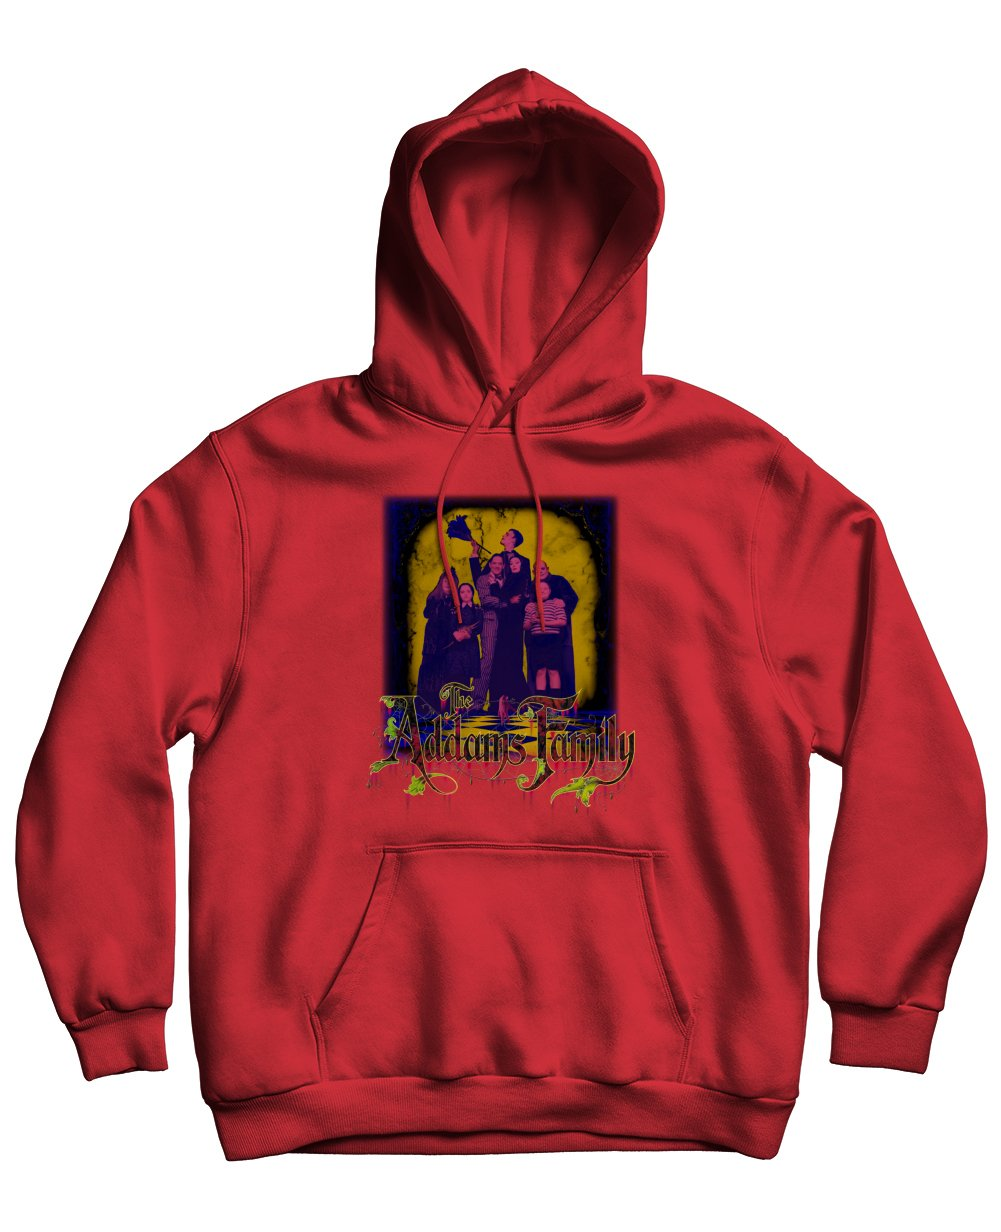 The Addams Family Print Hoodies in Red